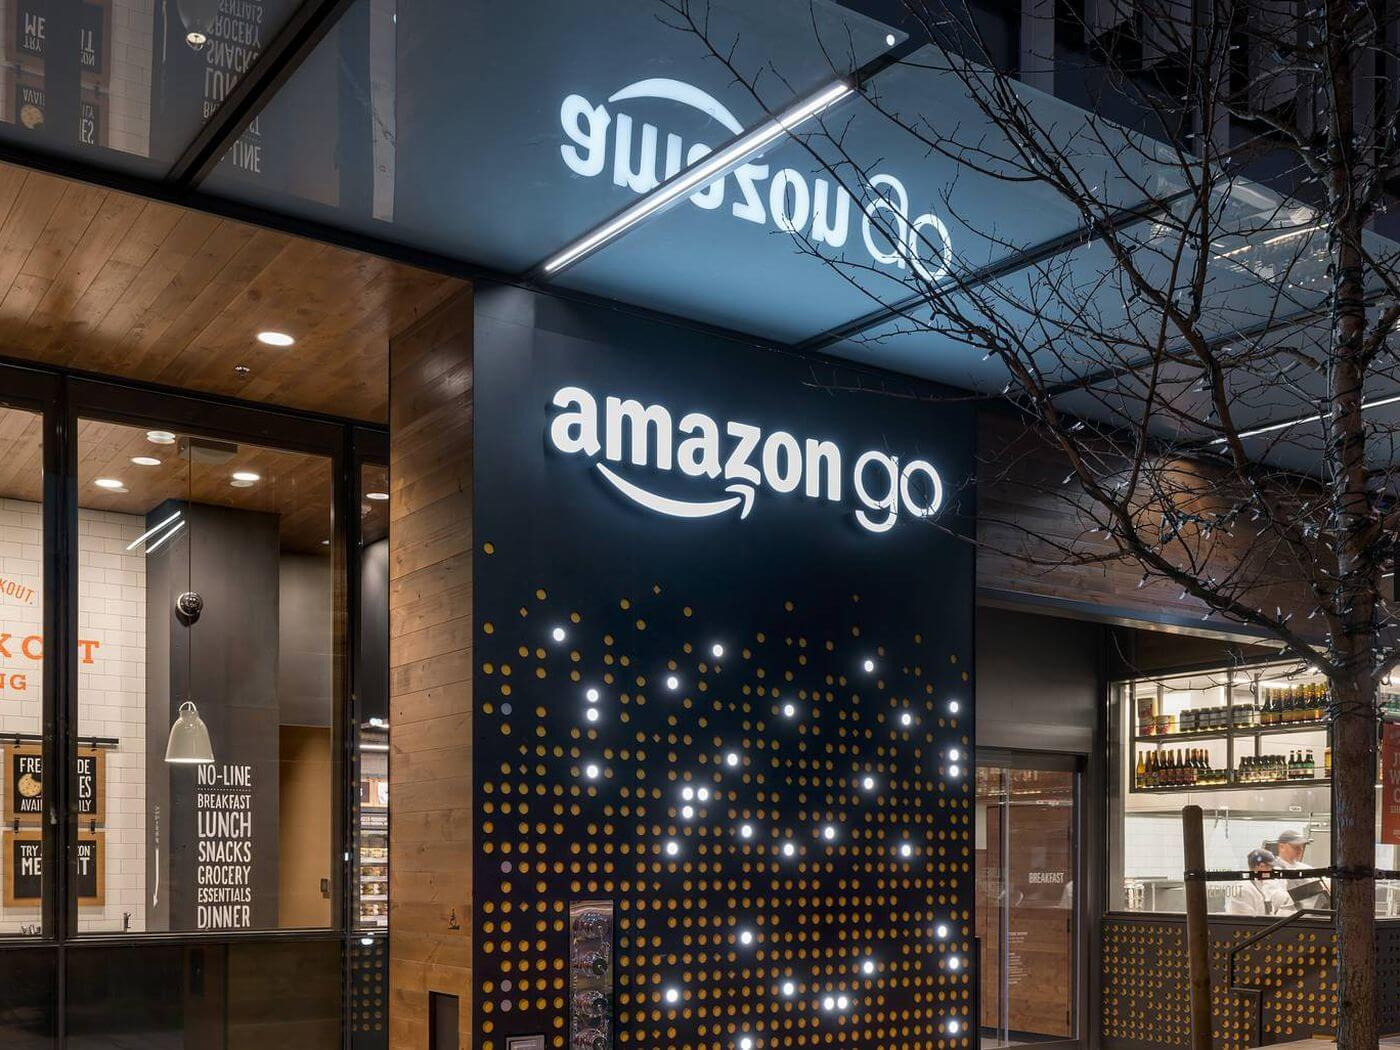 Amazon to open 3,000 brick-and-mortar stores by 2021